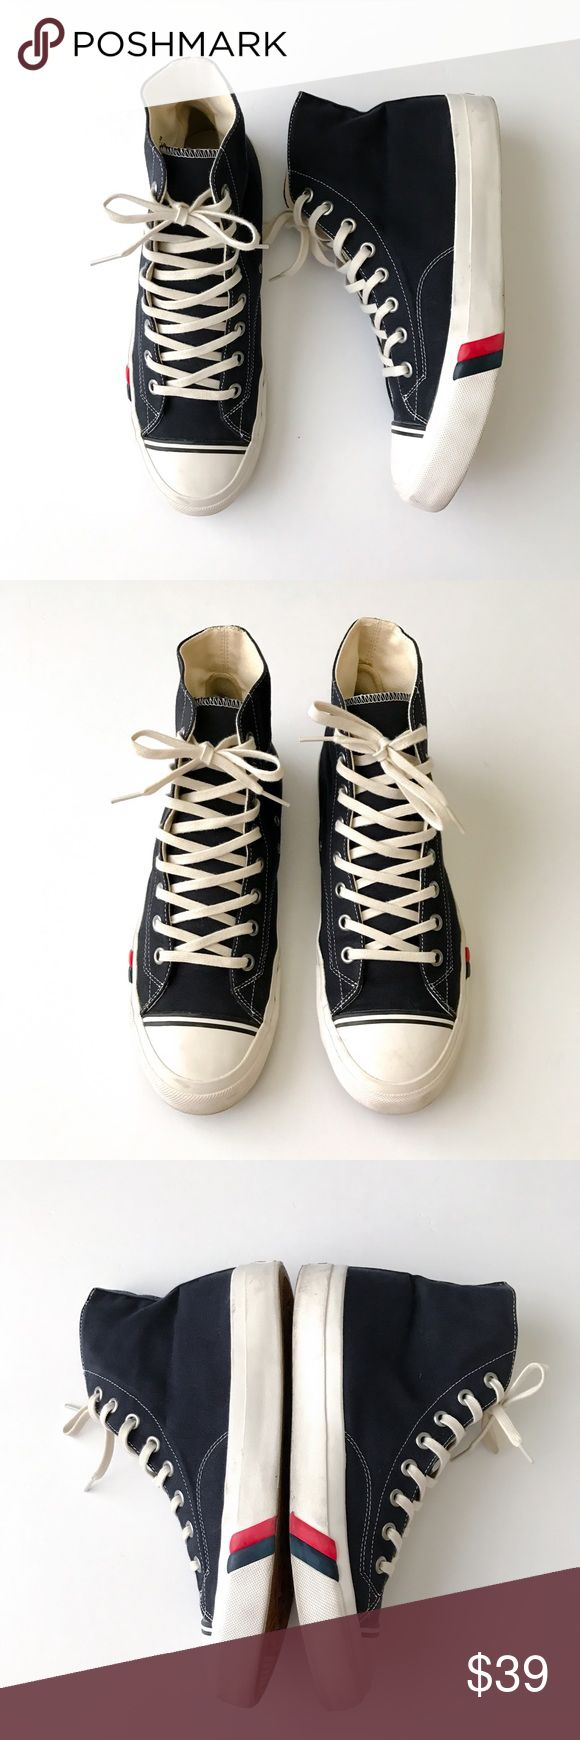 Pro-Keds men's shoes Use a couple of times. Please check photos for condition. Pro-Keds Shoes Sneakers